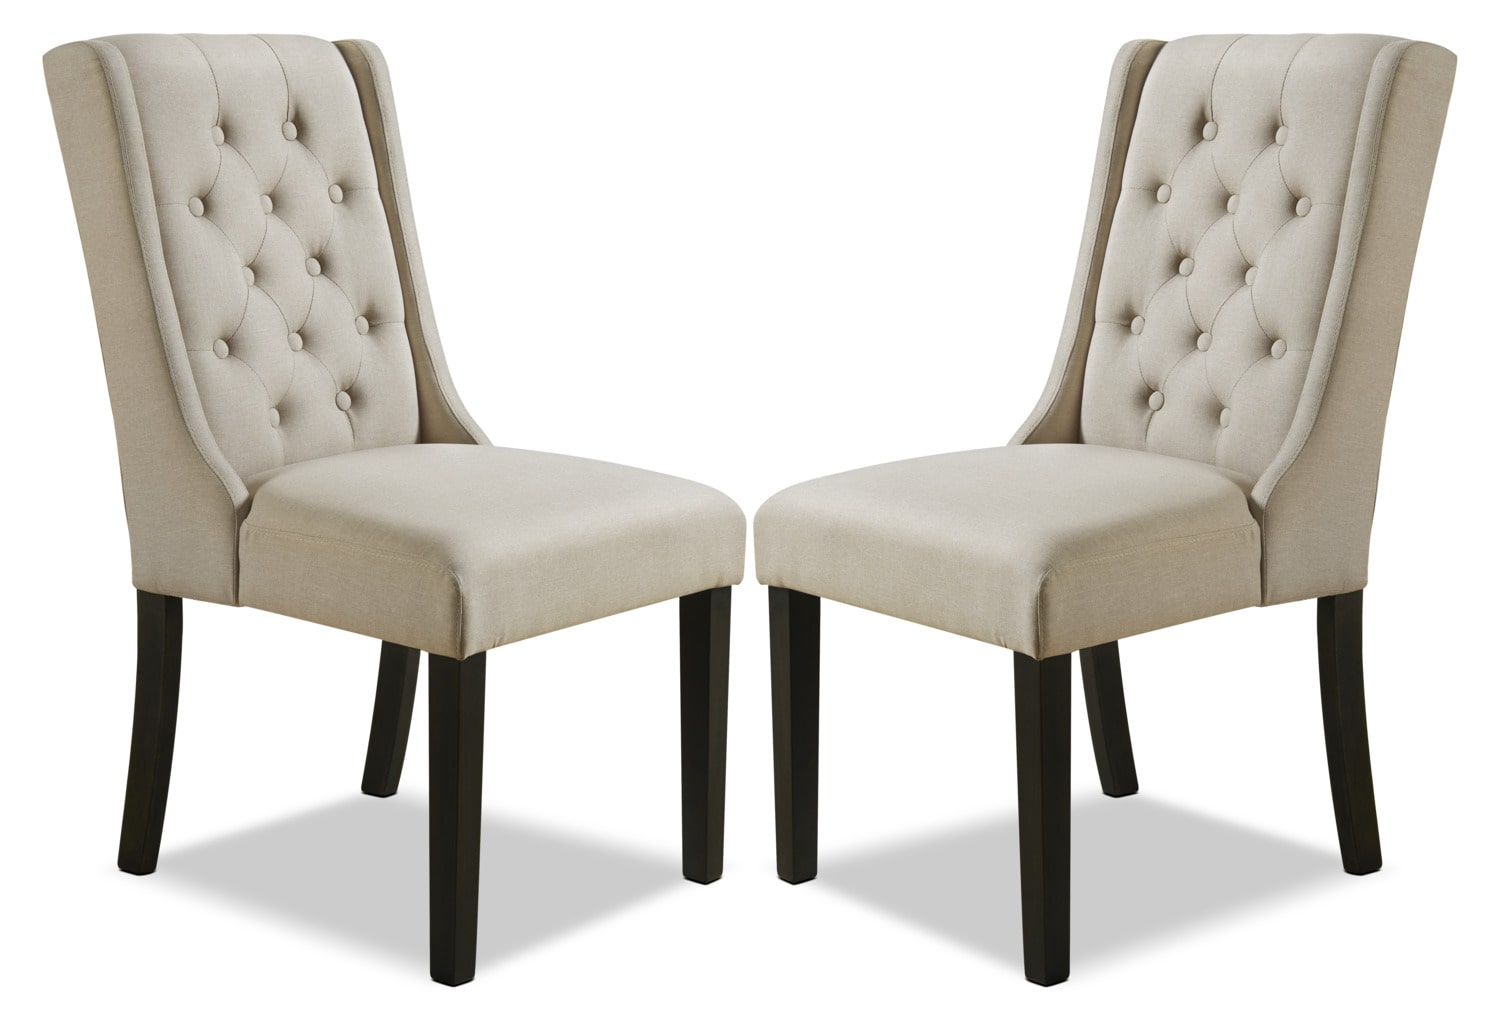 York Wingback Dining Chair Set Of 2 Beige The Brick